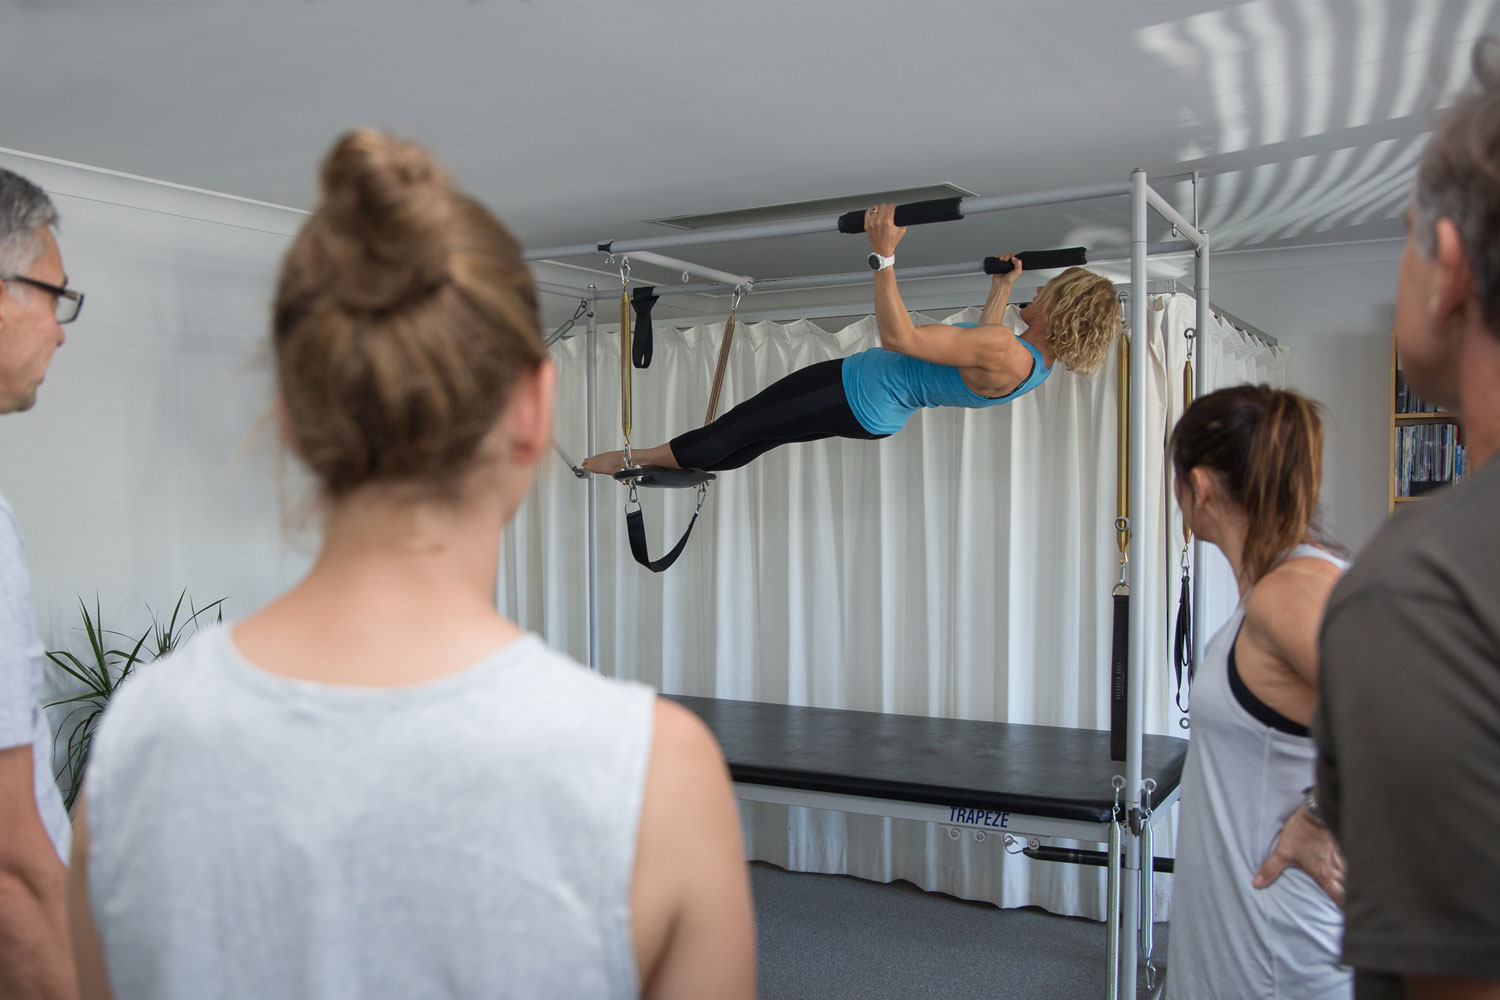 learn-pilates-in-forster-tuncurry-great-lakes-nsw.jpg